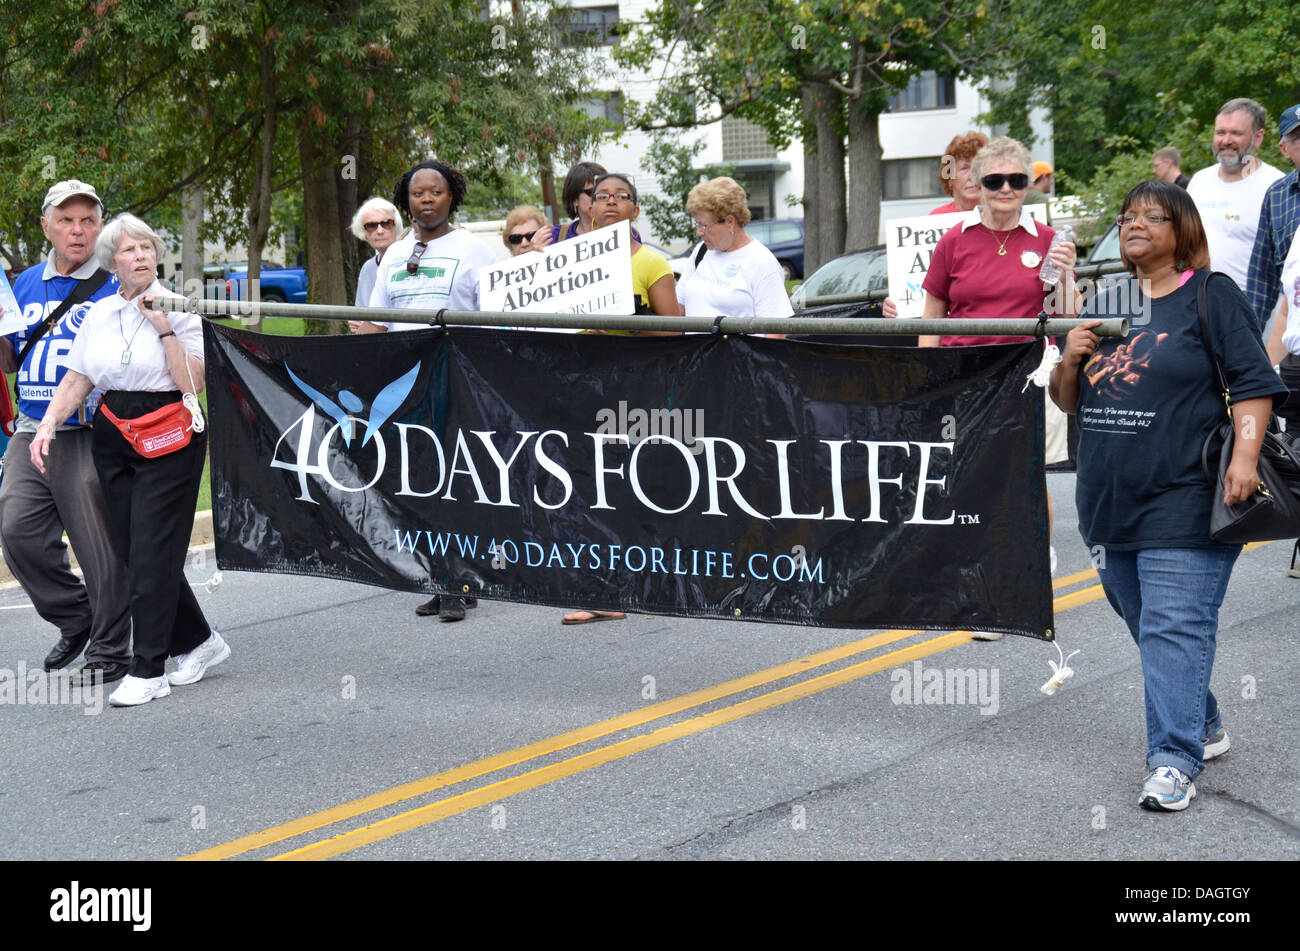 A Pro Life group marches in a Greenbelt Maryland's Labor Day Parade - Stock Image